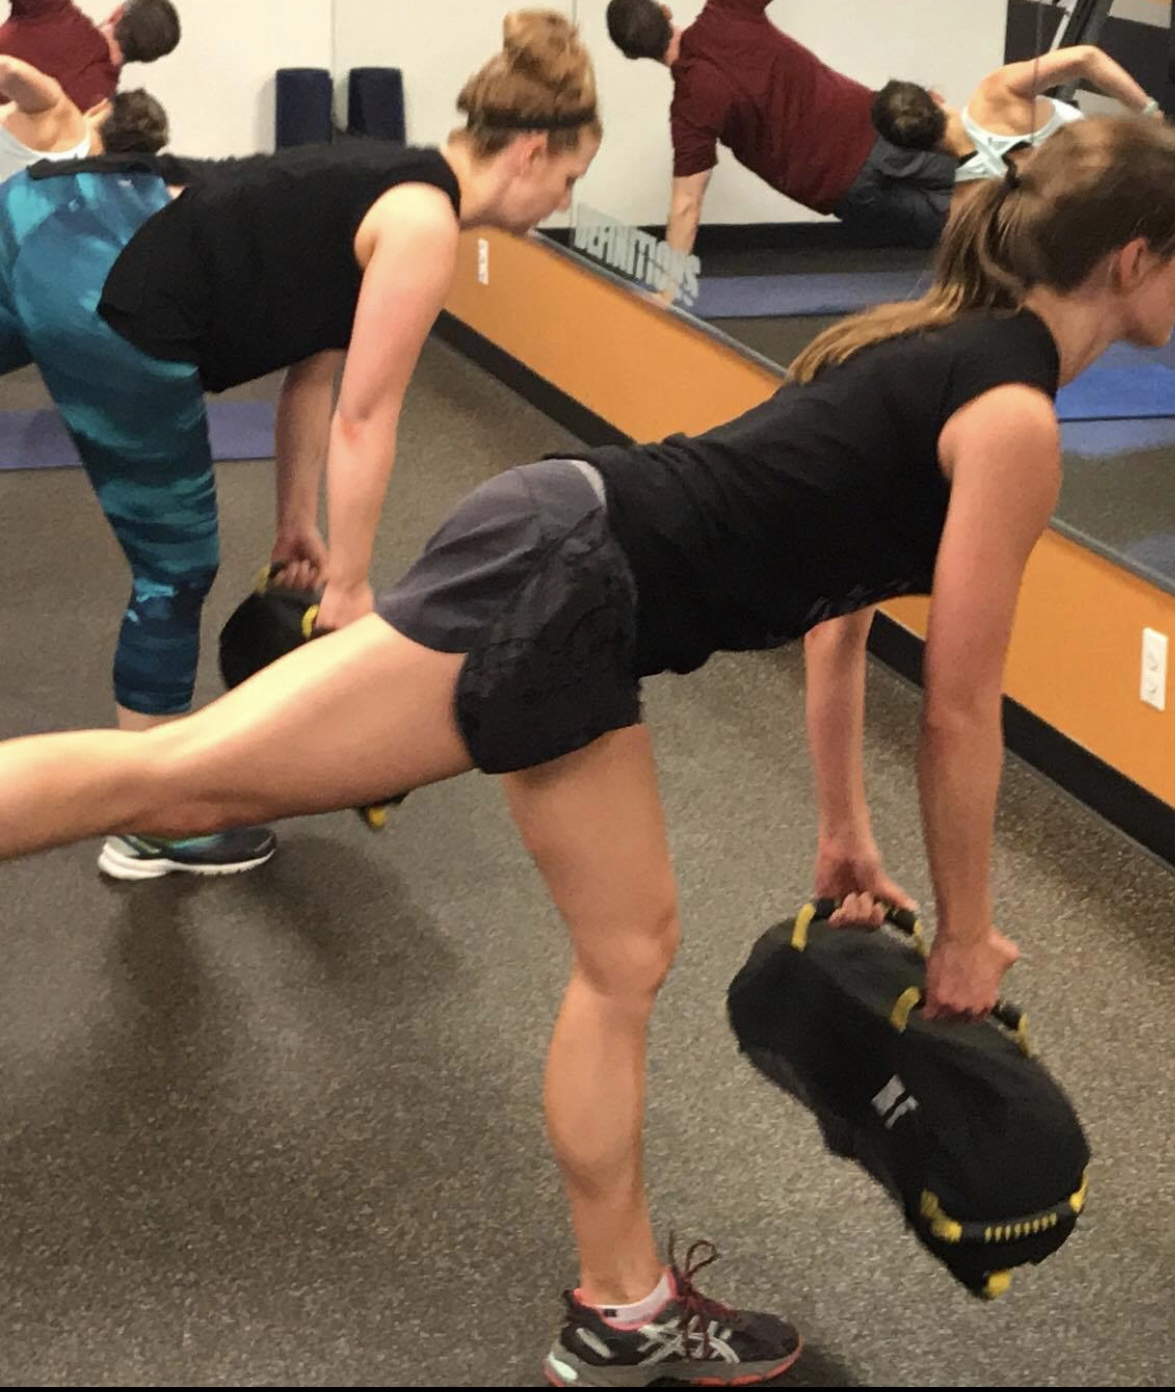 Improve Balance And Strength With 1 Leg Dead Lift With The Sandbag And 1 Leg Lunge On Step